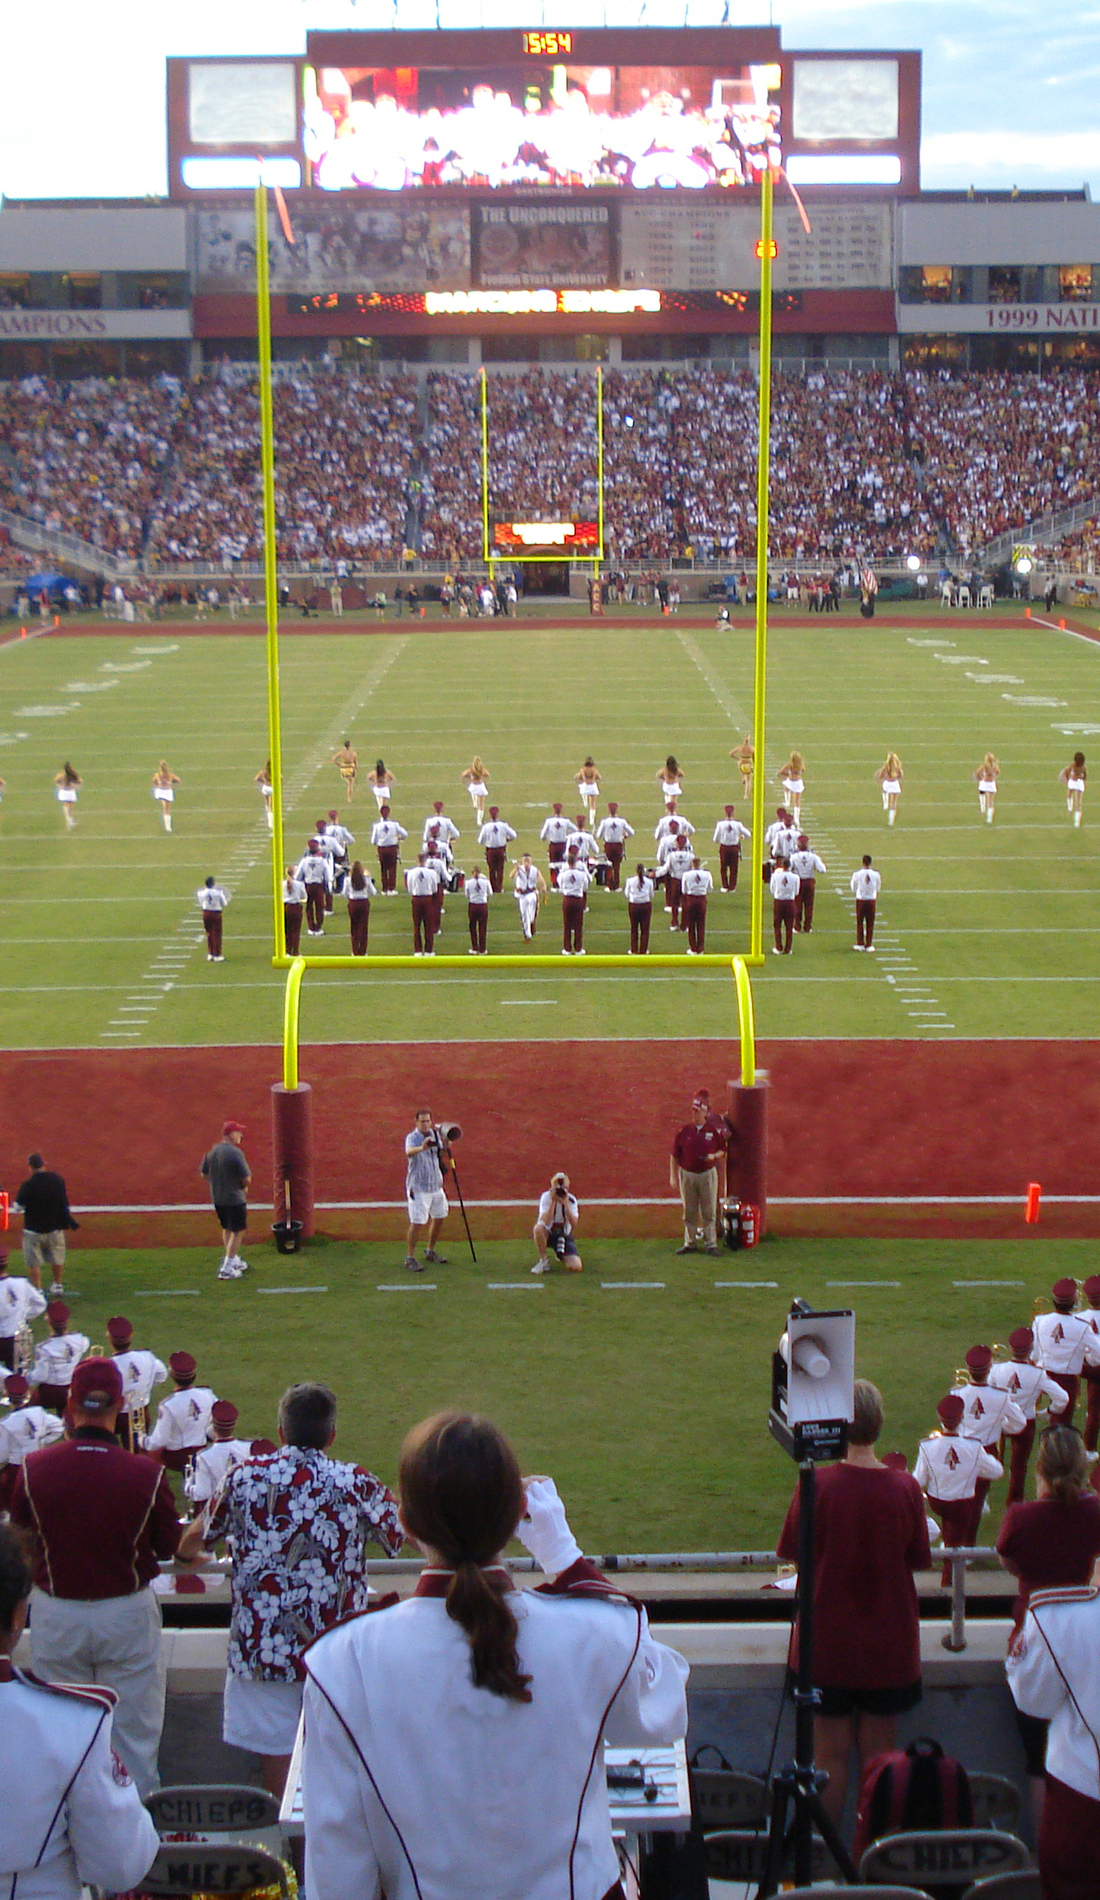 A Florida State Seminoles Football live event